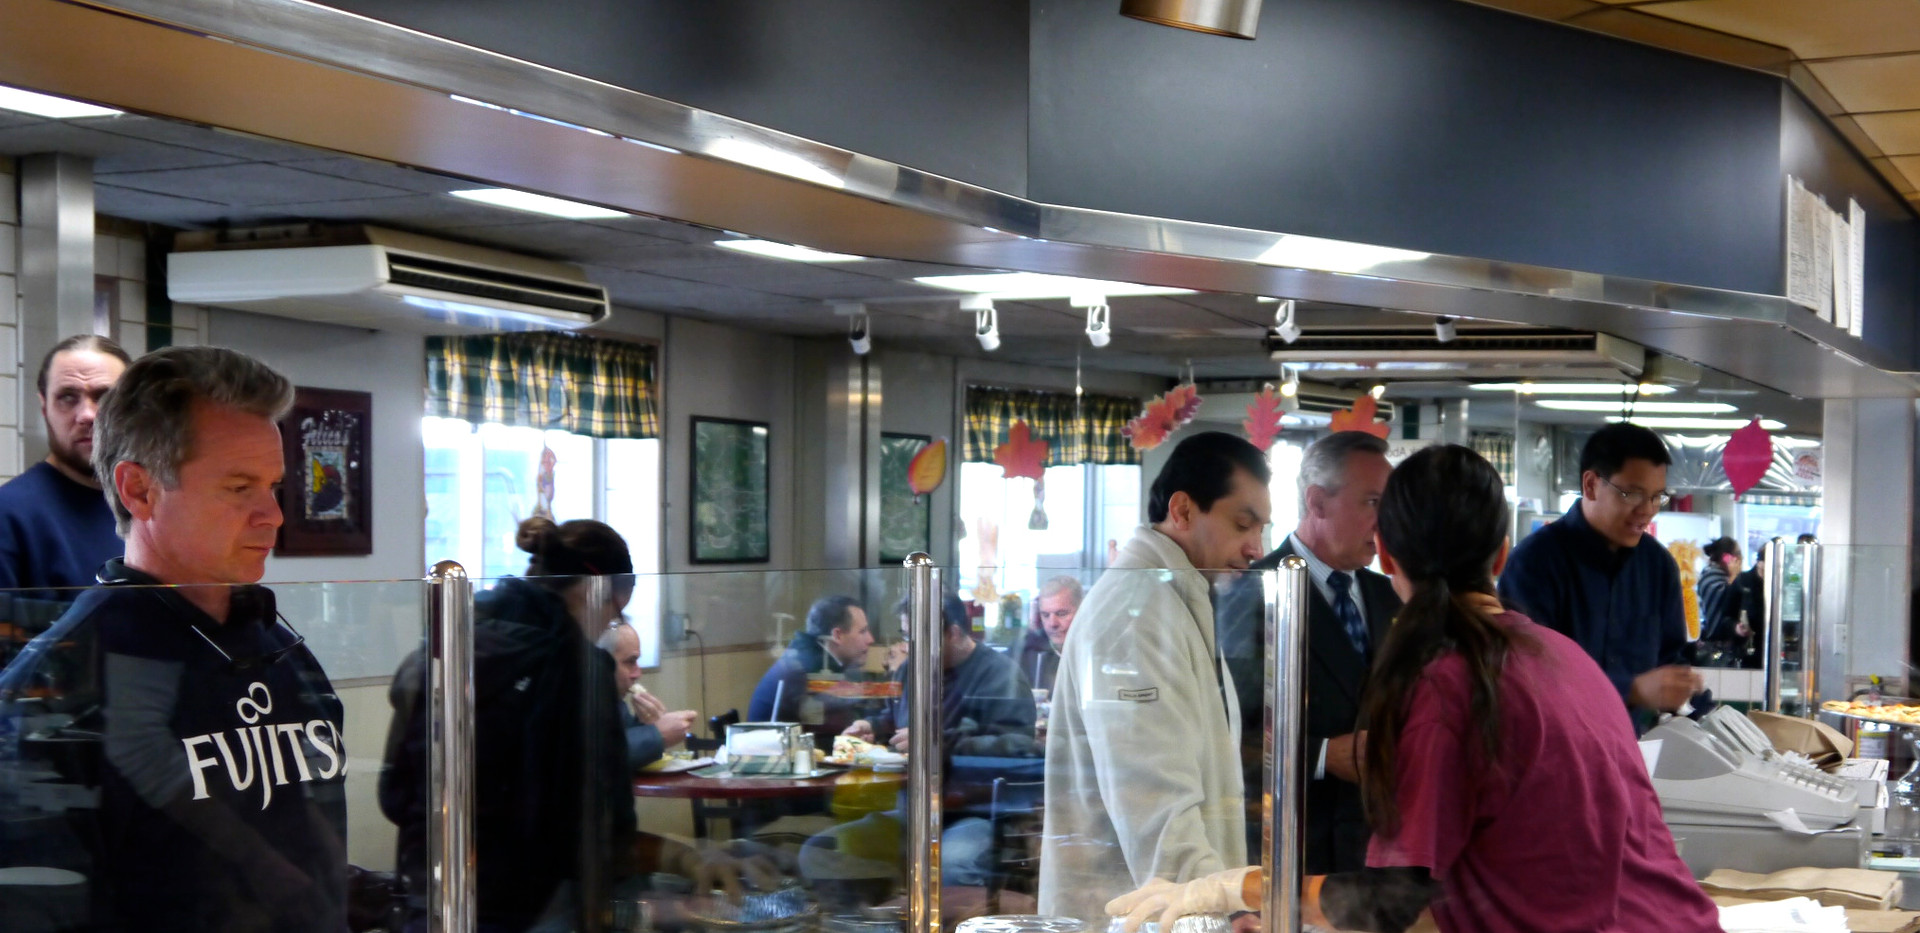 lunch rush at Felico's Restaurant